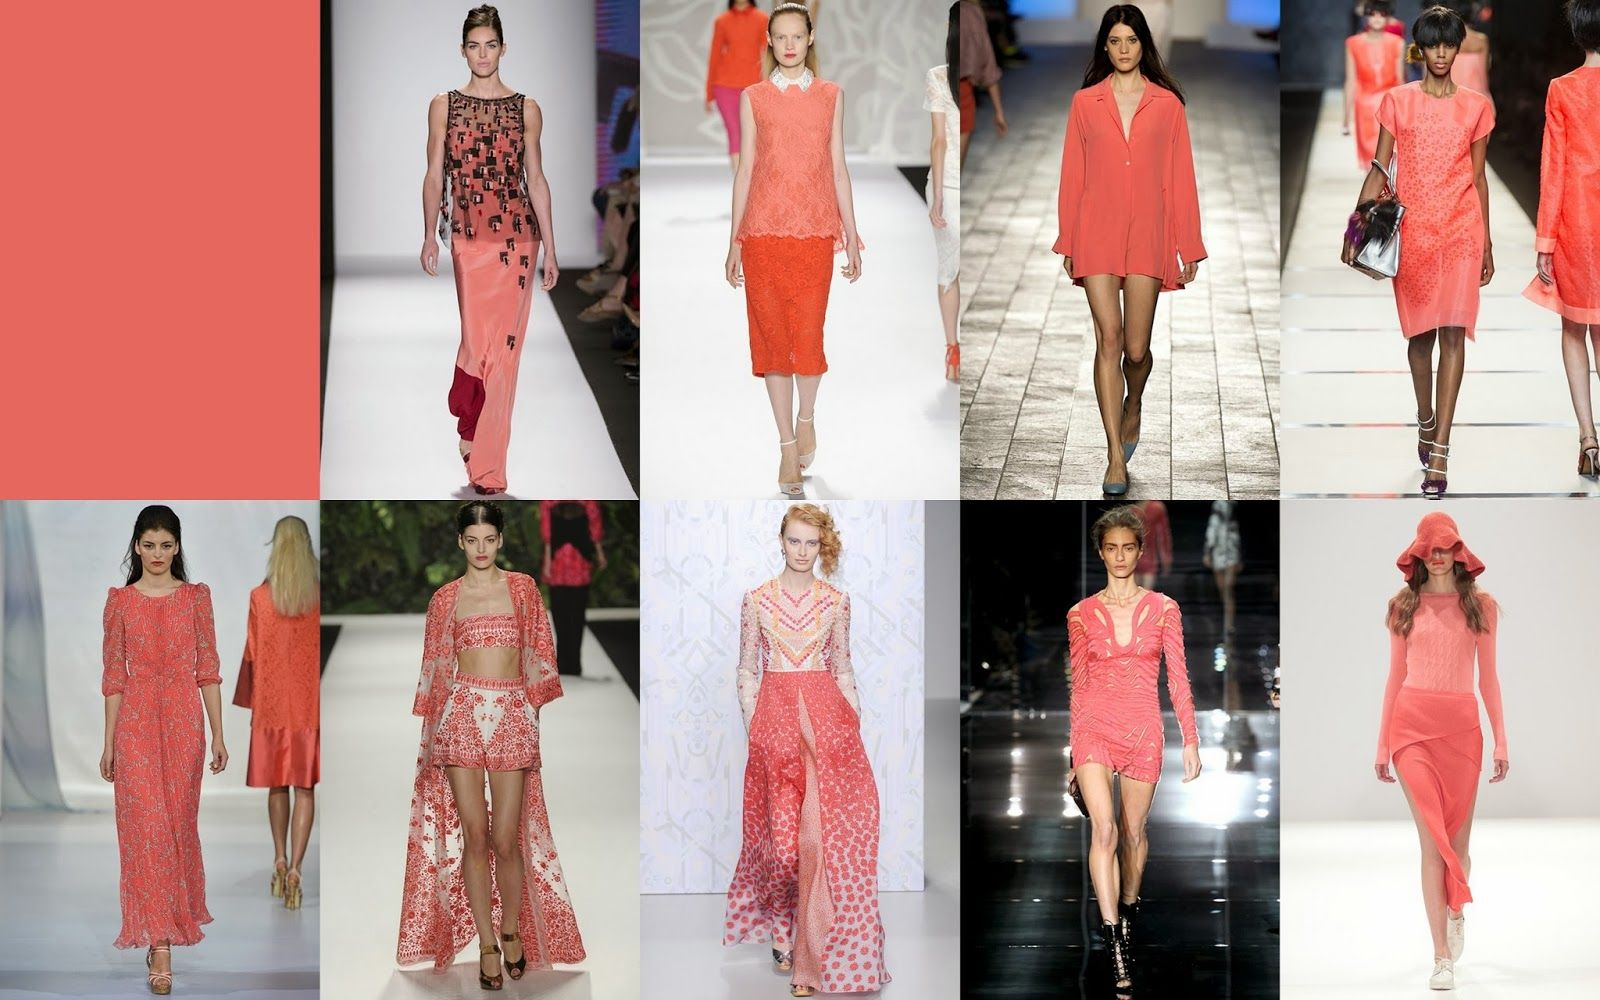 Cayenne Fashion Color Report #Spring2014 @PANTONE COLOR  in #runways #LFW #MFW #NYFW